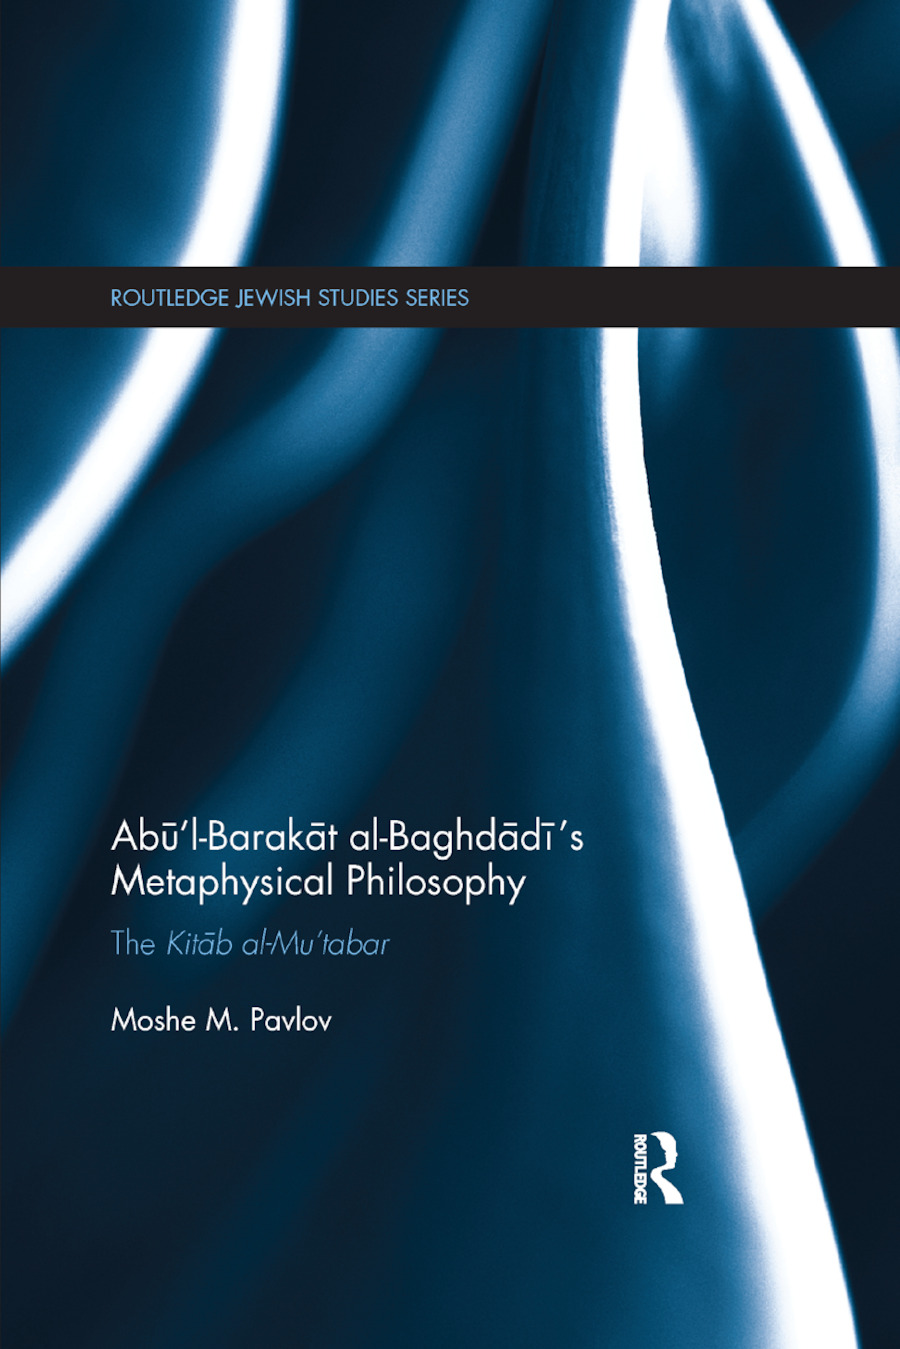 Abu�l-Barakat al-Baghdadi�s Metaphysical Philosophy: The Kitab al-Mu�tabar book cover